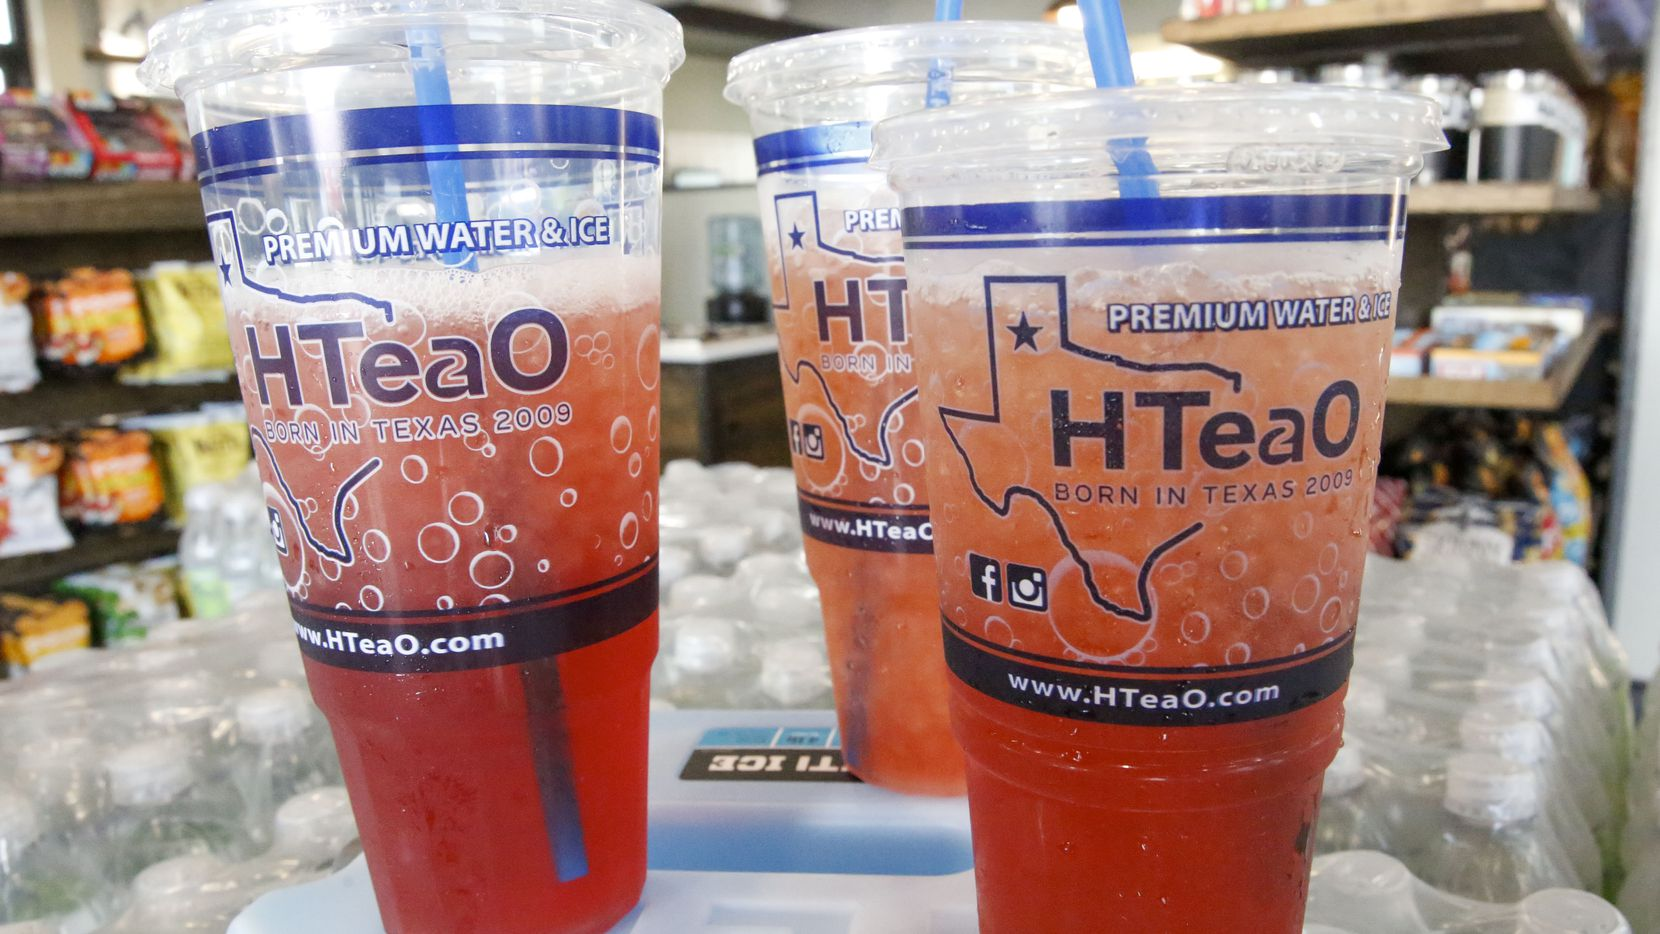 HTeaO, which offers 25 flavors of Texas-style iced tea, is opening Friday in Arlington.